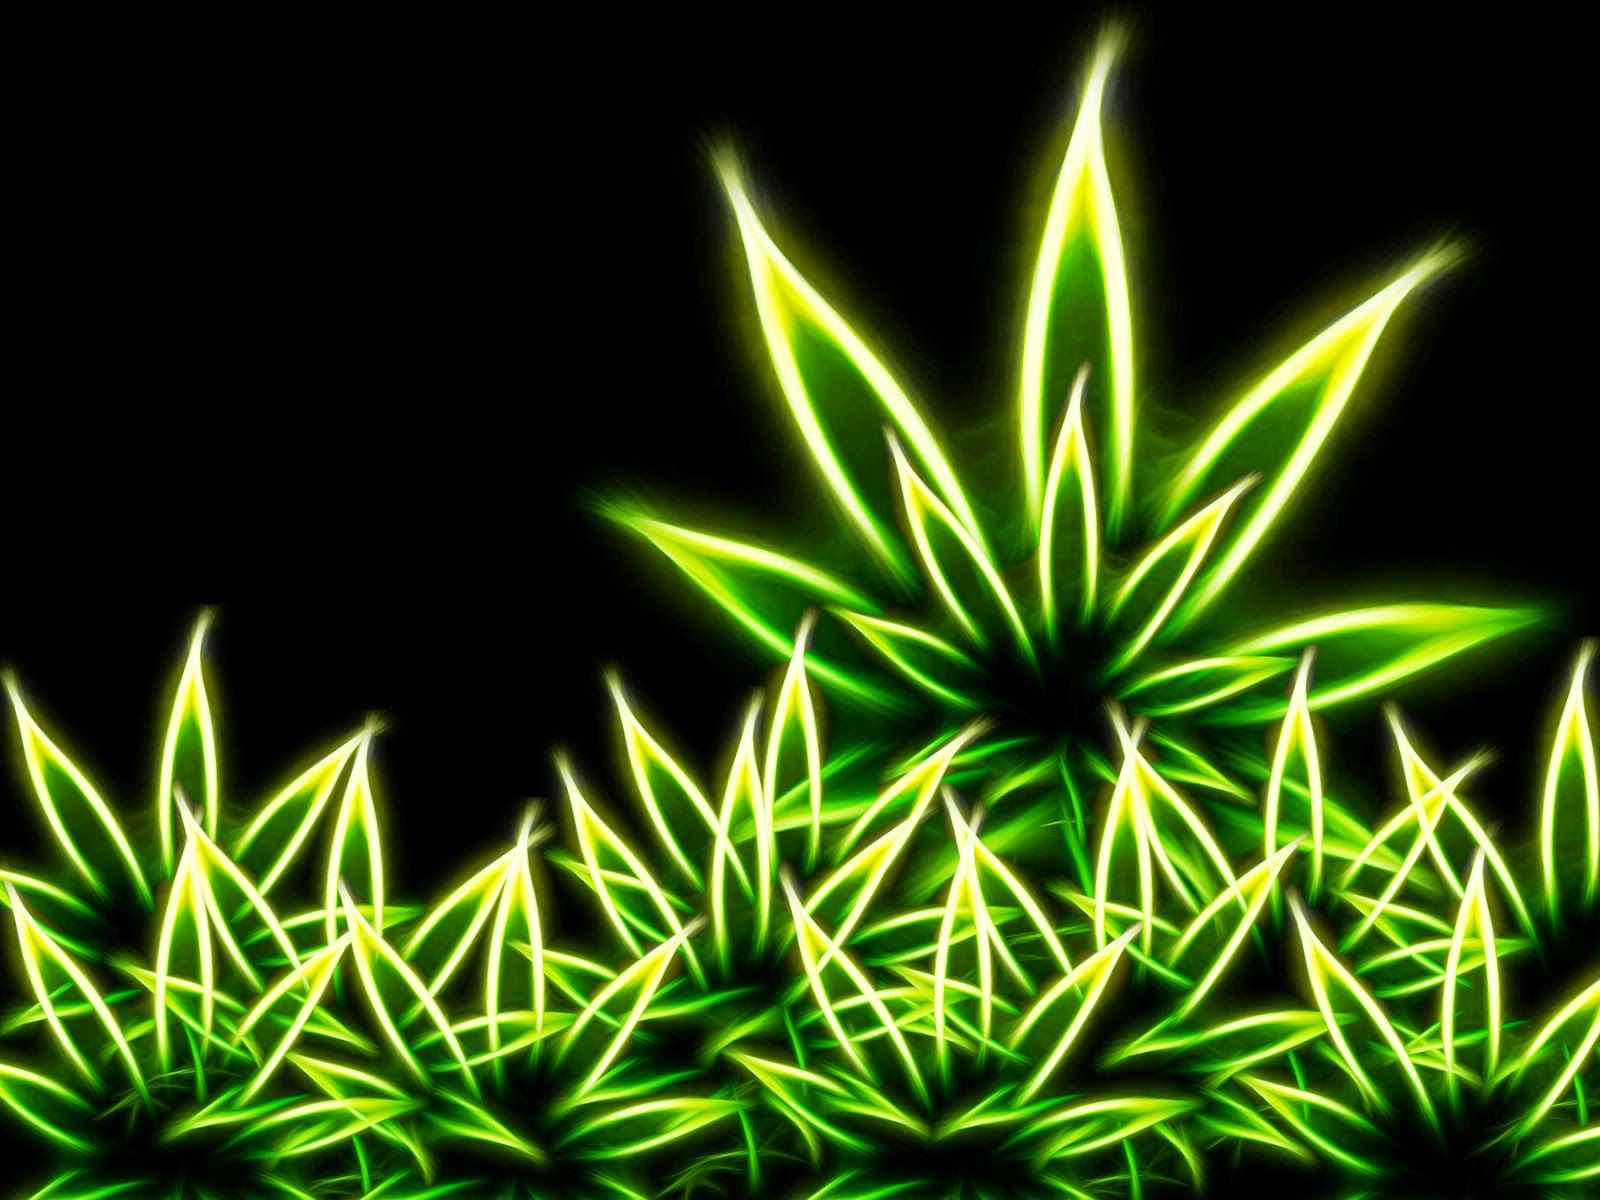 weed nokia wallpapers download free page of